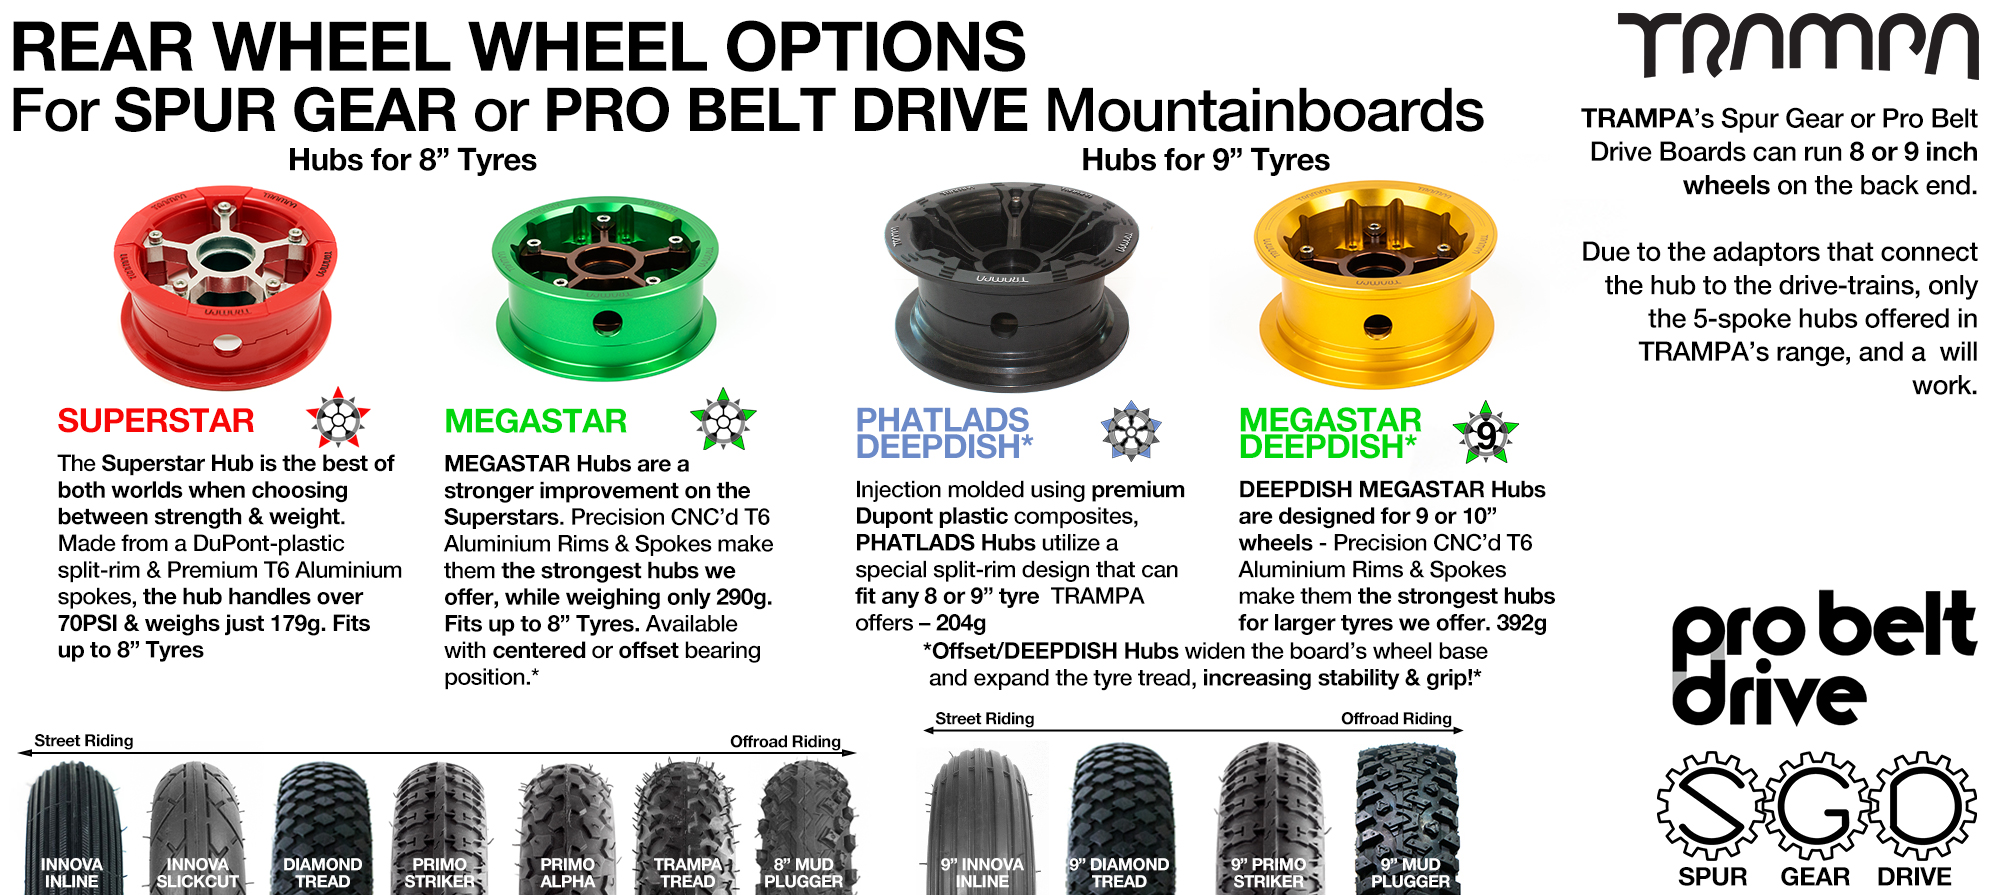 Build your own Custom REAR Wheel to fit to your SPUR GEAR DRIVE Motor Mount. You can fit PHATLADS, SUPERSTARSS, PRIMO's or  MEGASTAR's DEEP DISH MEGASTAR's! 8, 9 or 10 Inch wheels of awesome selection for on & off road! Amazing!! (COPY)